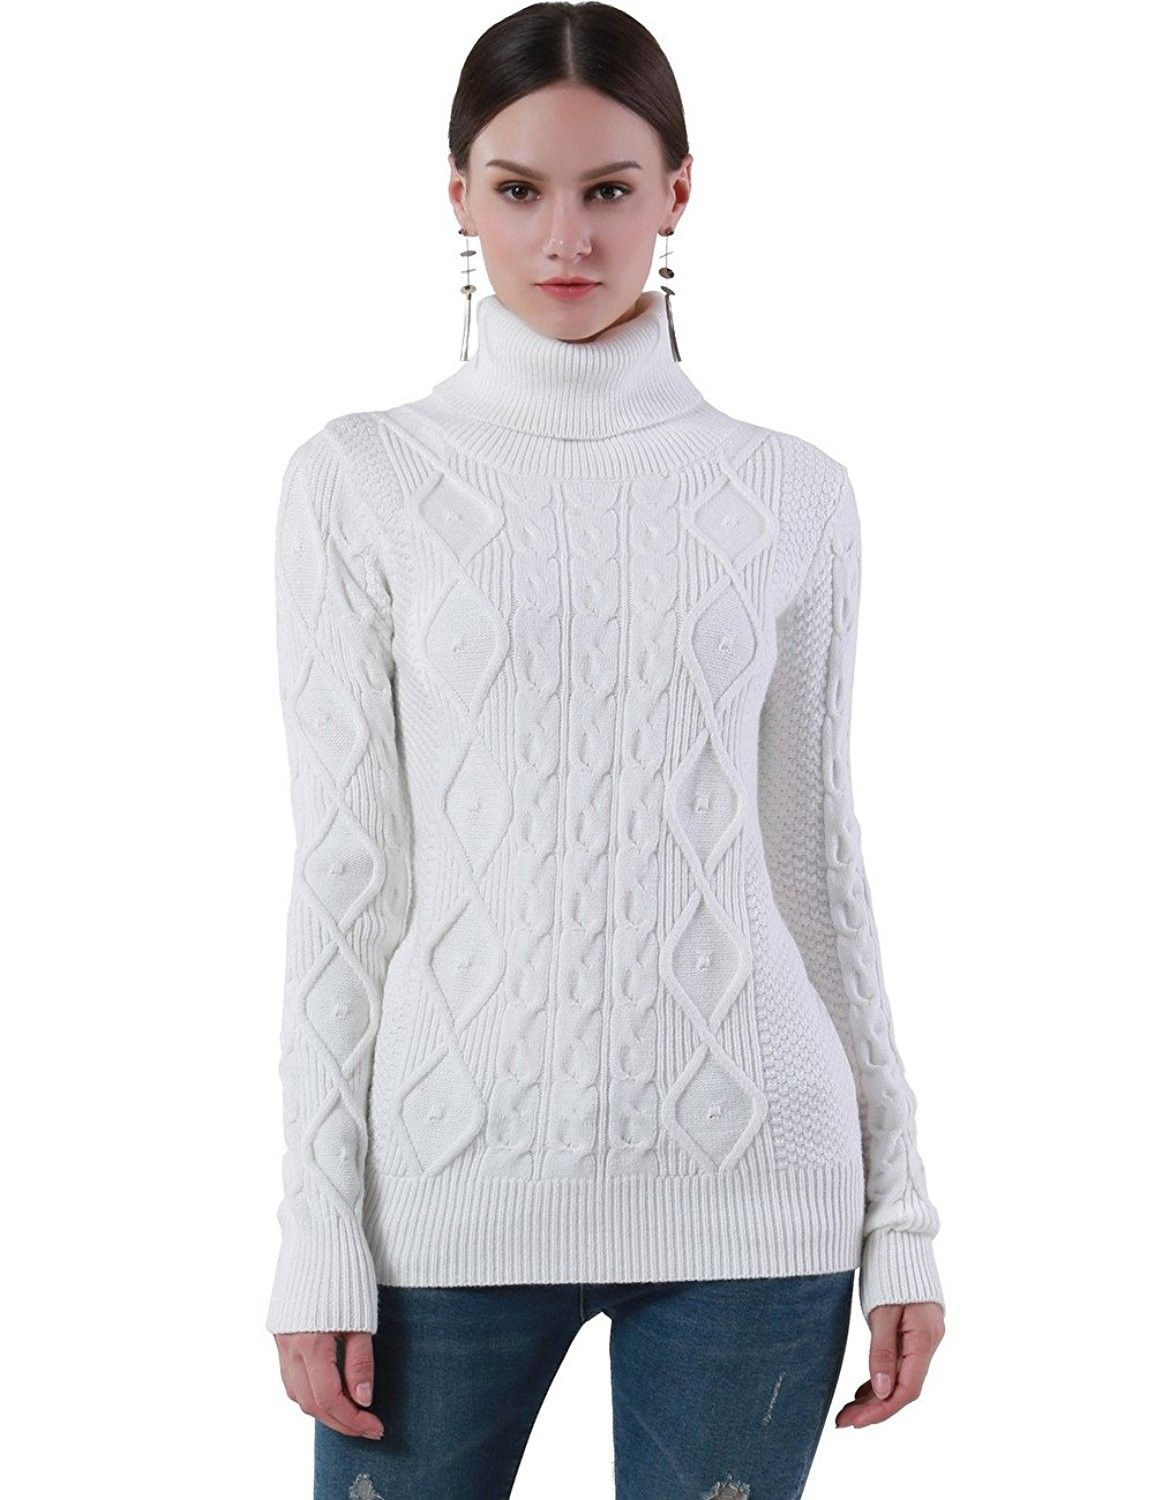 Women's Turtleneck Sweater Long Sleeve Cable Knit Sweater